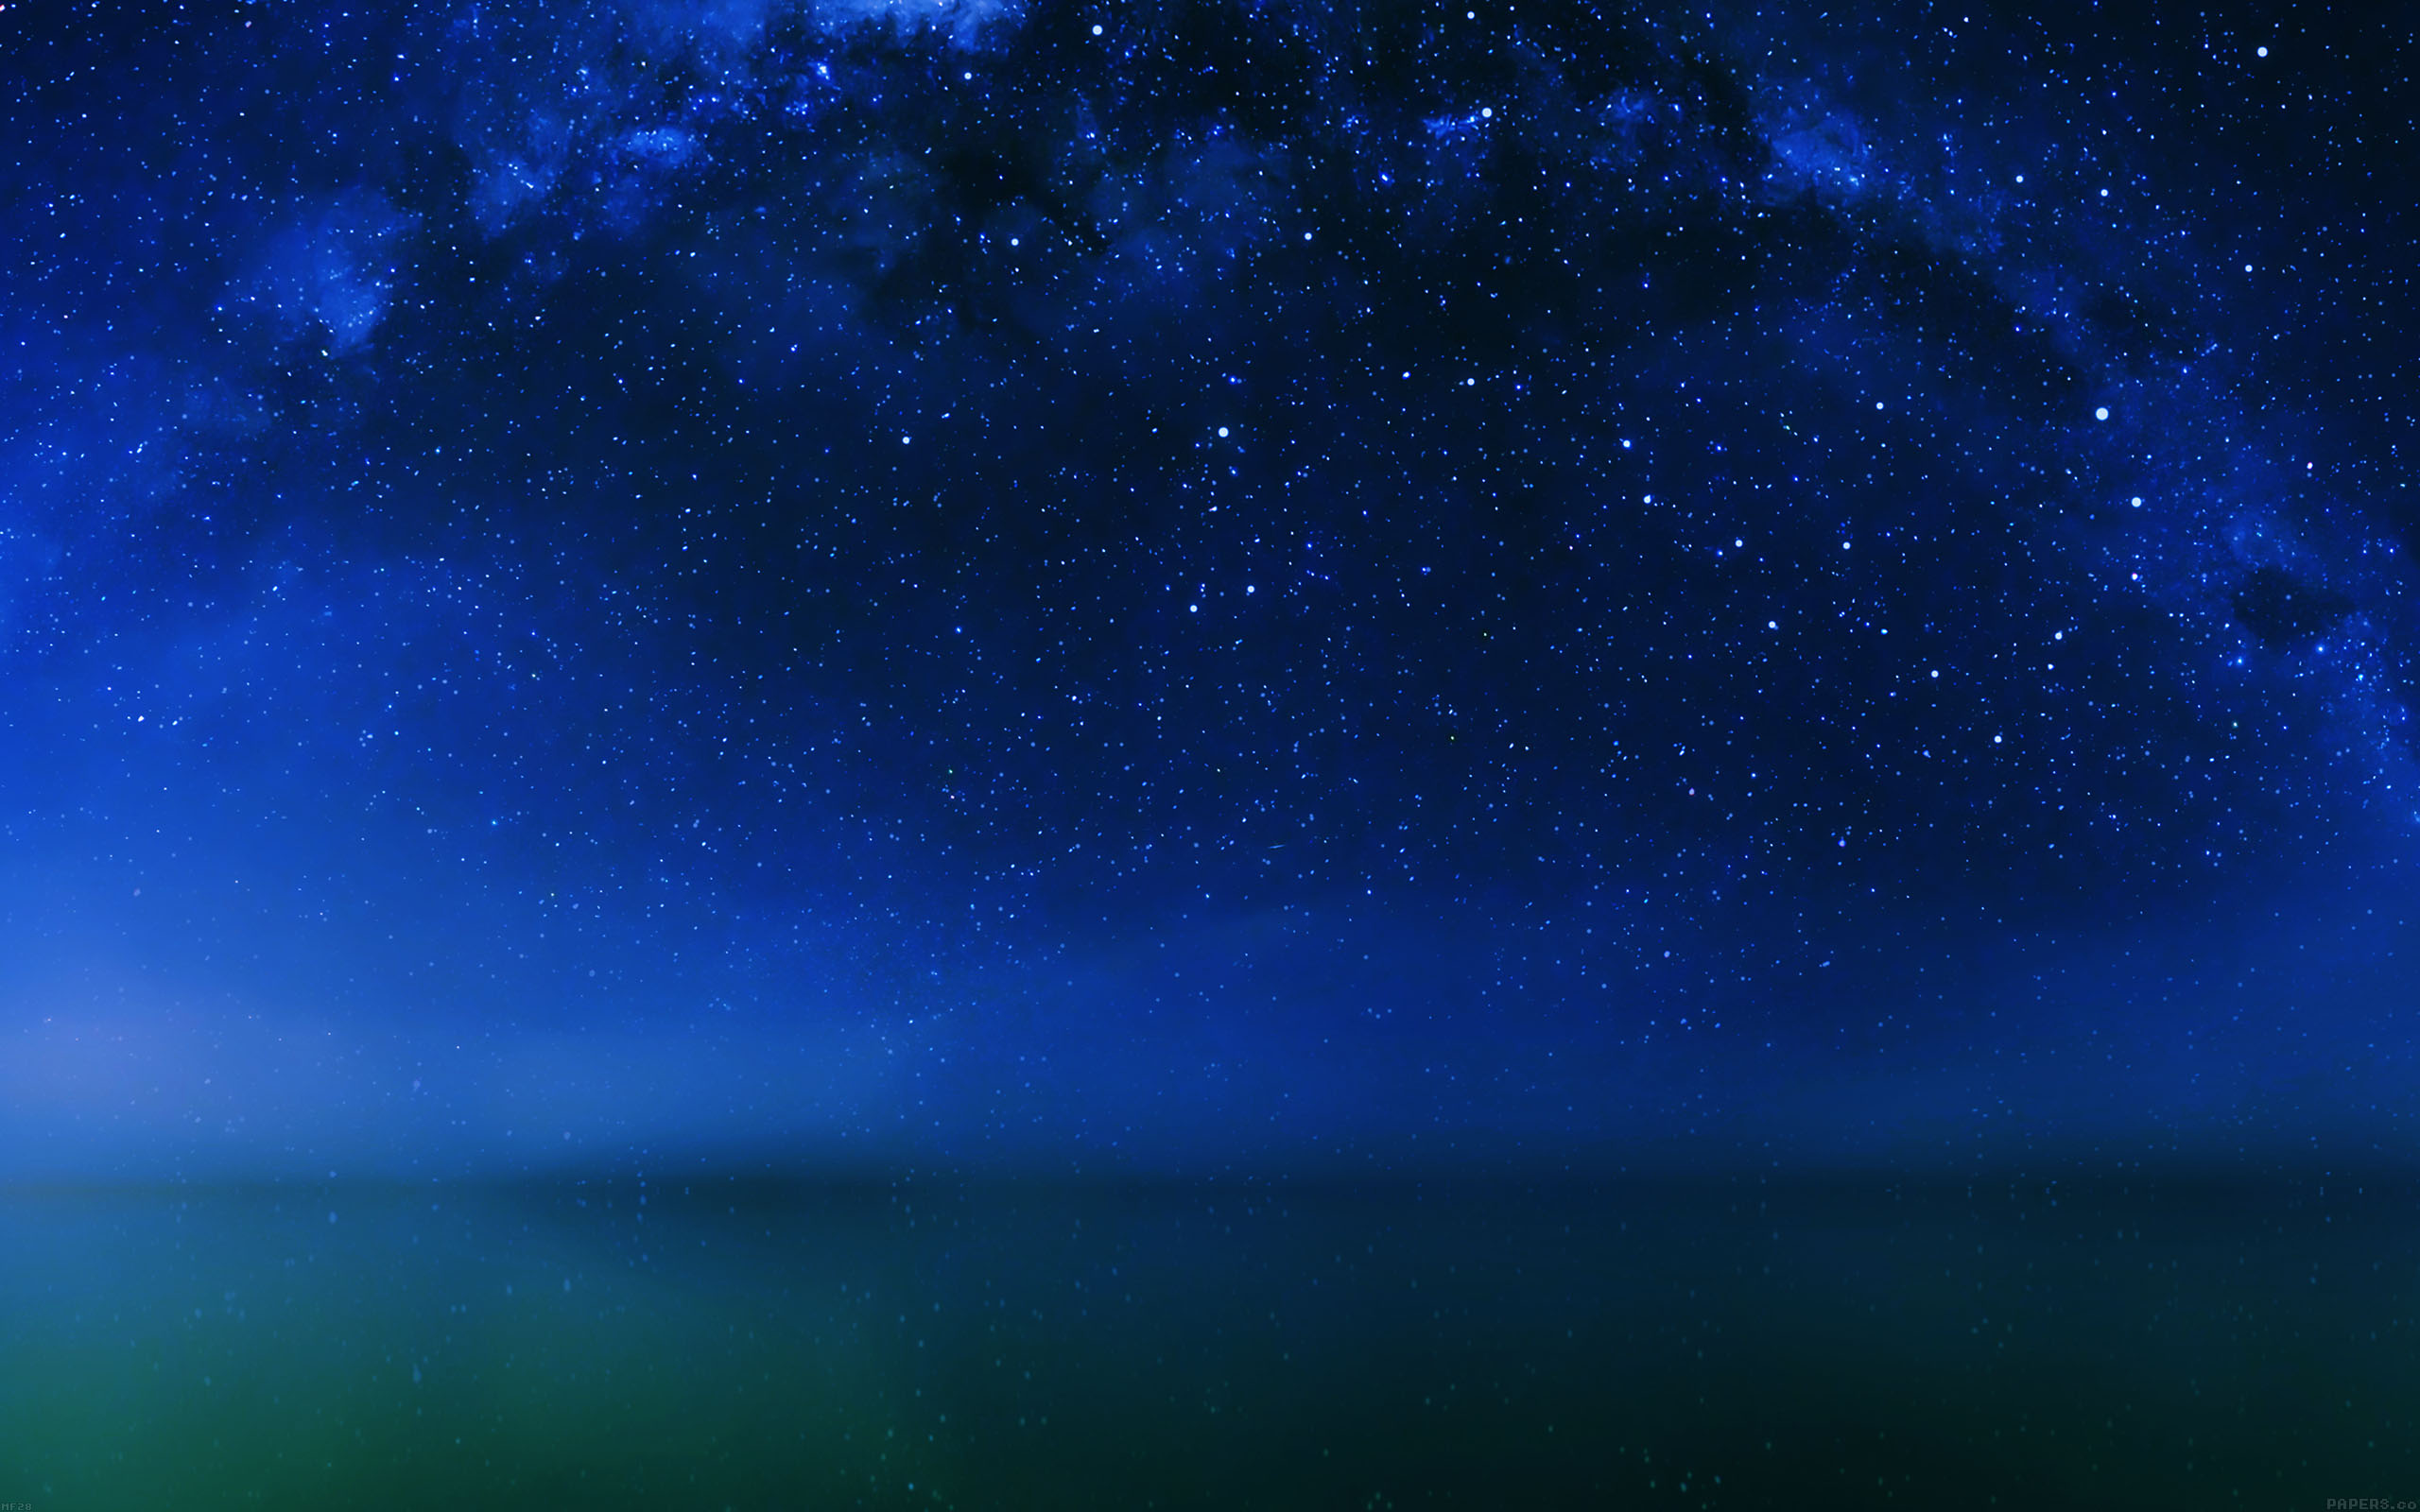 Mf28-cosmos-night-live-lake-space-starry